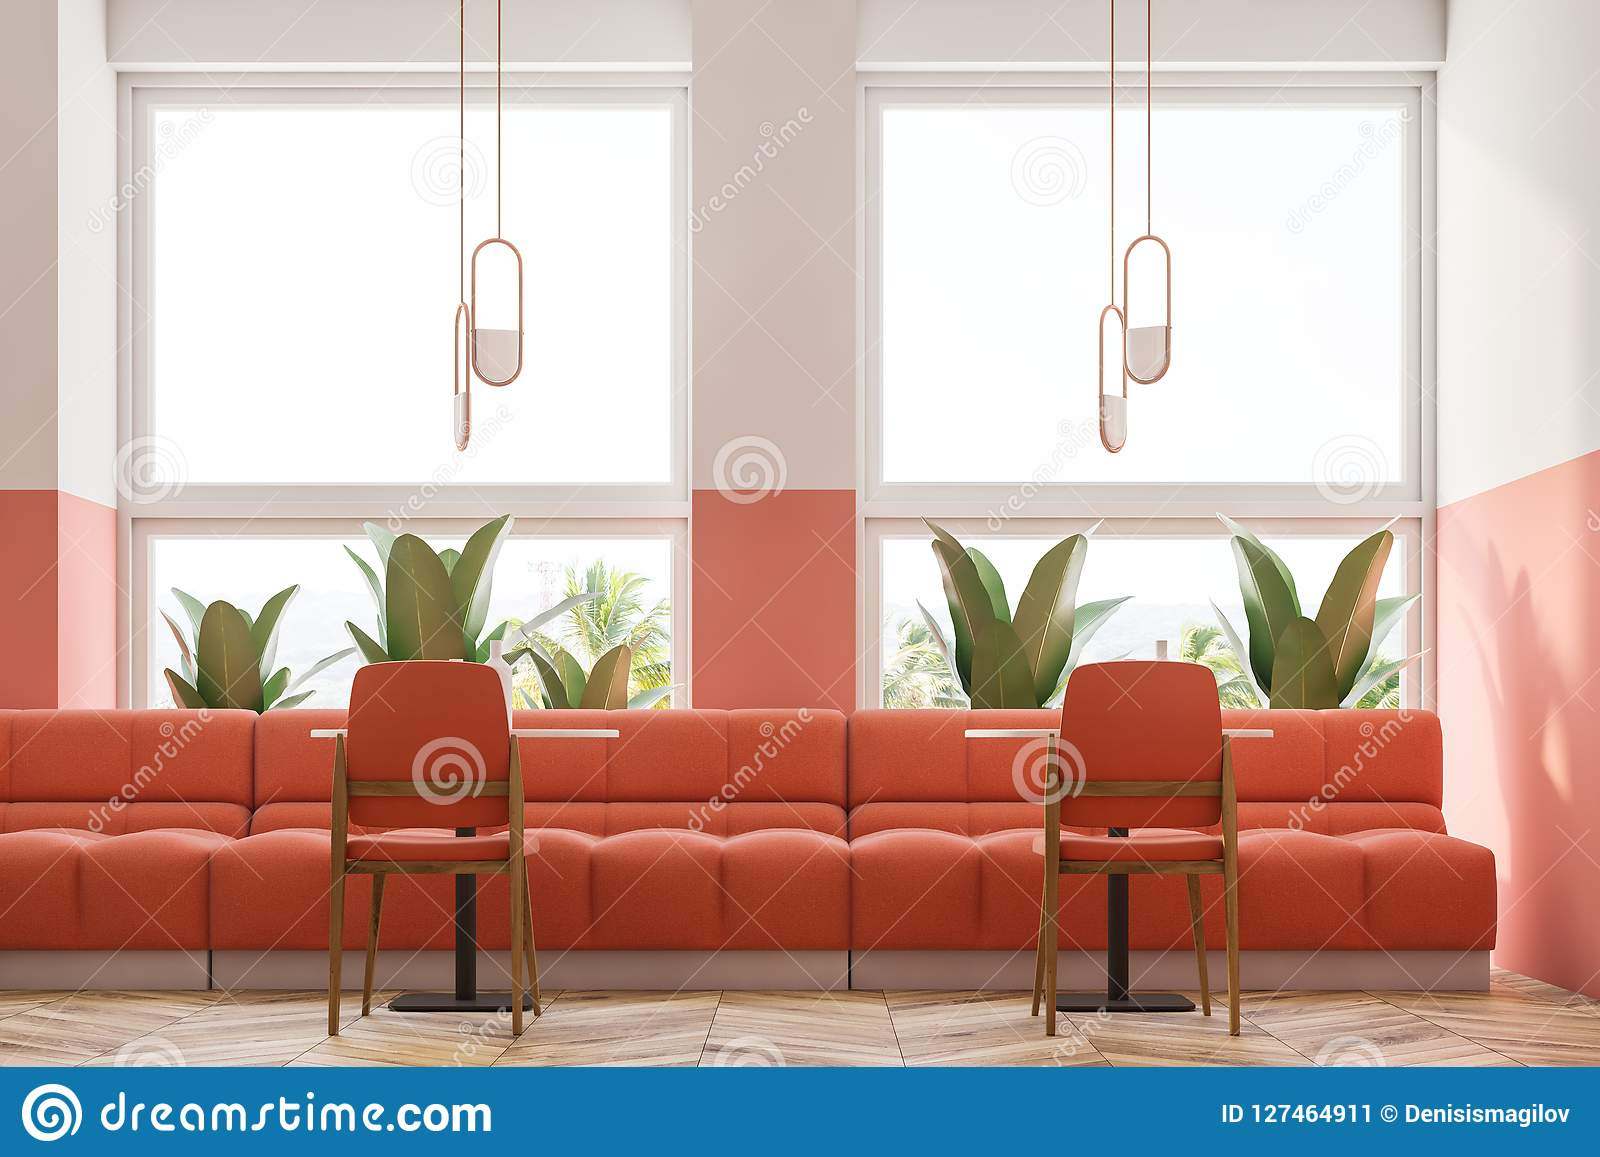 Enjoyable Pink Retro Cafe Interior Loft And Plants Close Up Stock Caraccident5 Cool Chair Designs And Ideas Caraccident5Info